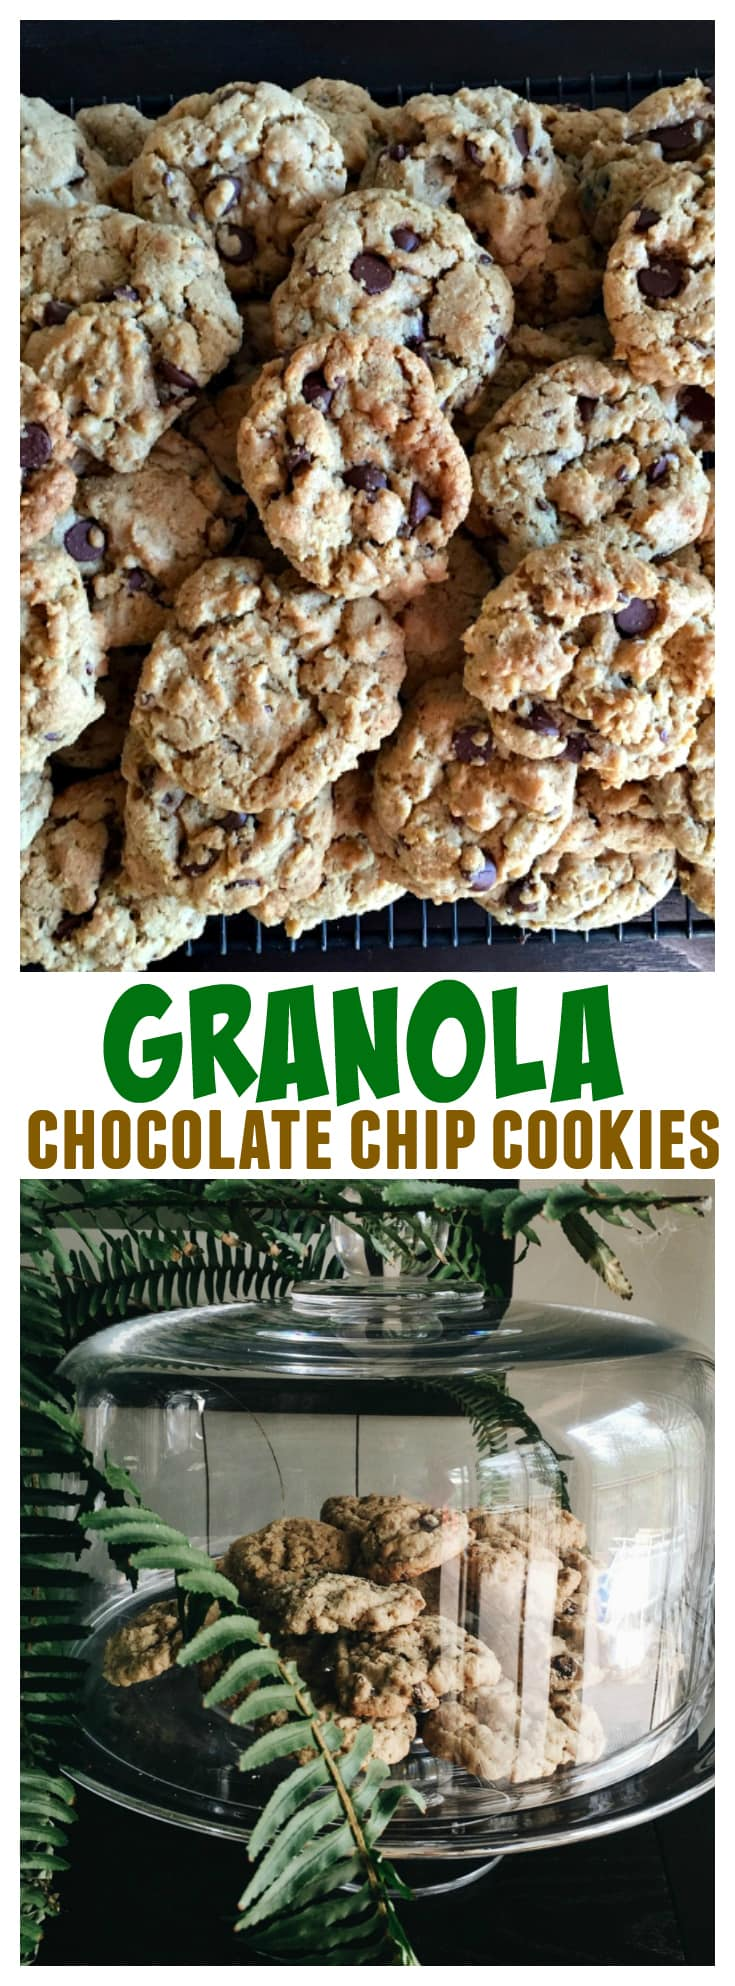 Granola Chocolate Chip Cookies at ReluctantEntertainer.com